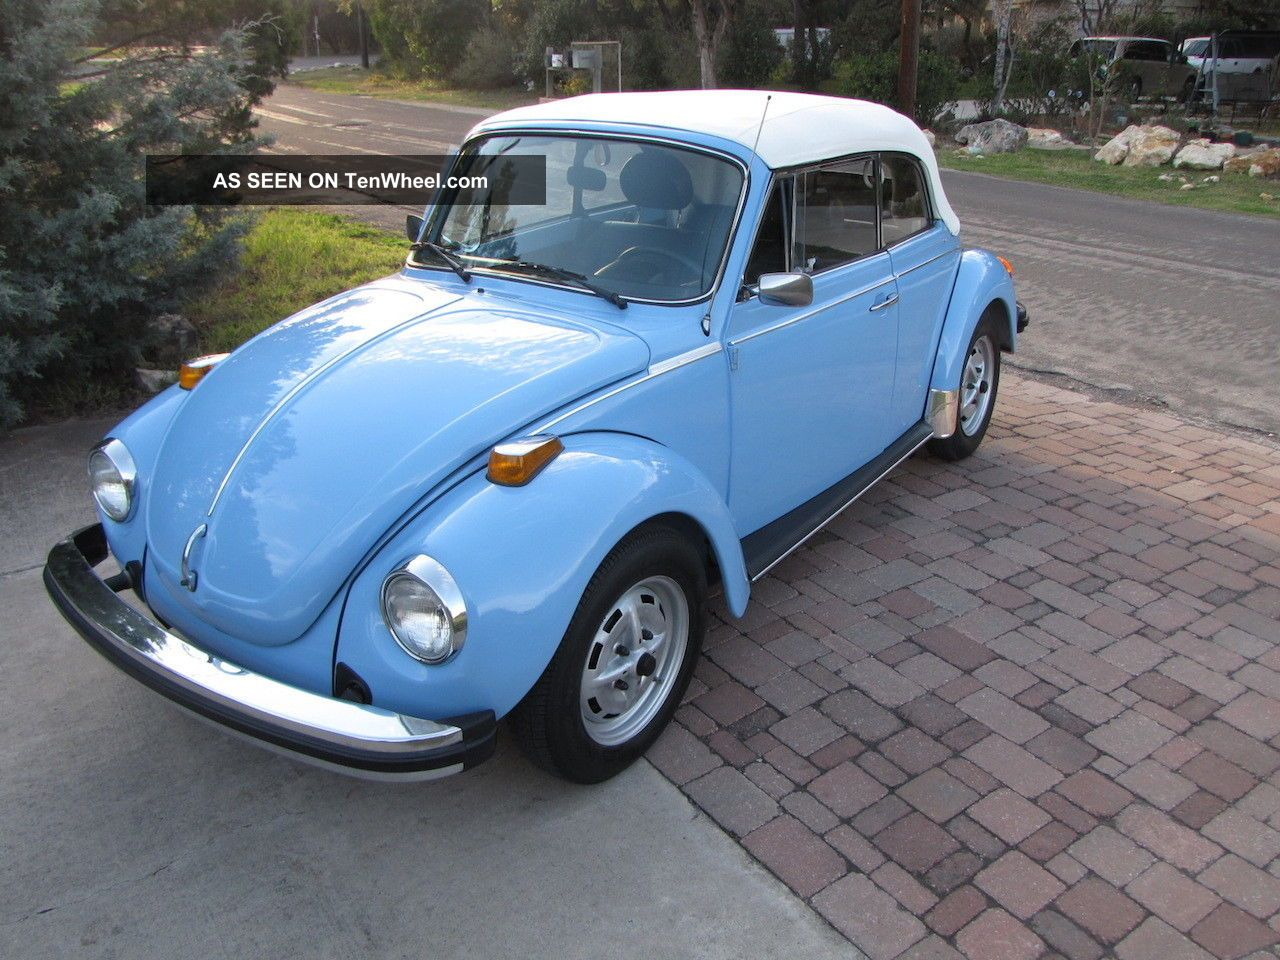 1979 Vw Beetle Convertible Cabrio Karmann Classic Bug - Show Quality Beetle - Classic photo